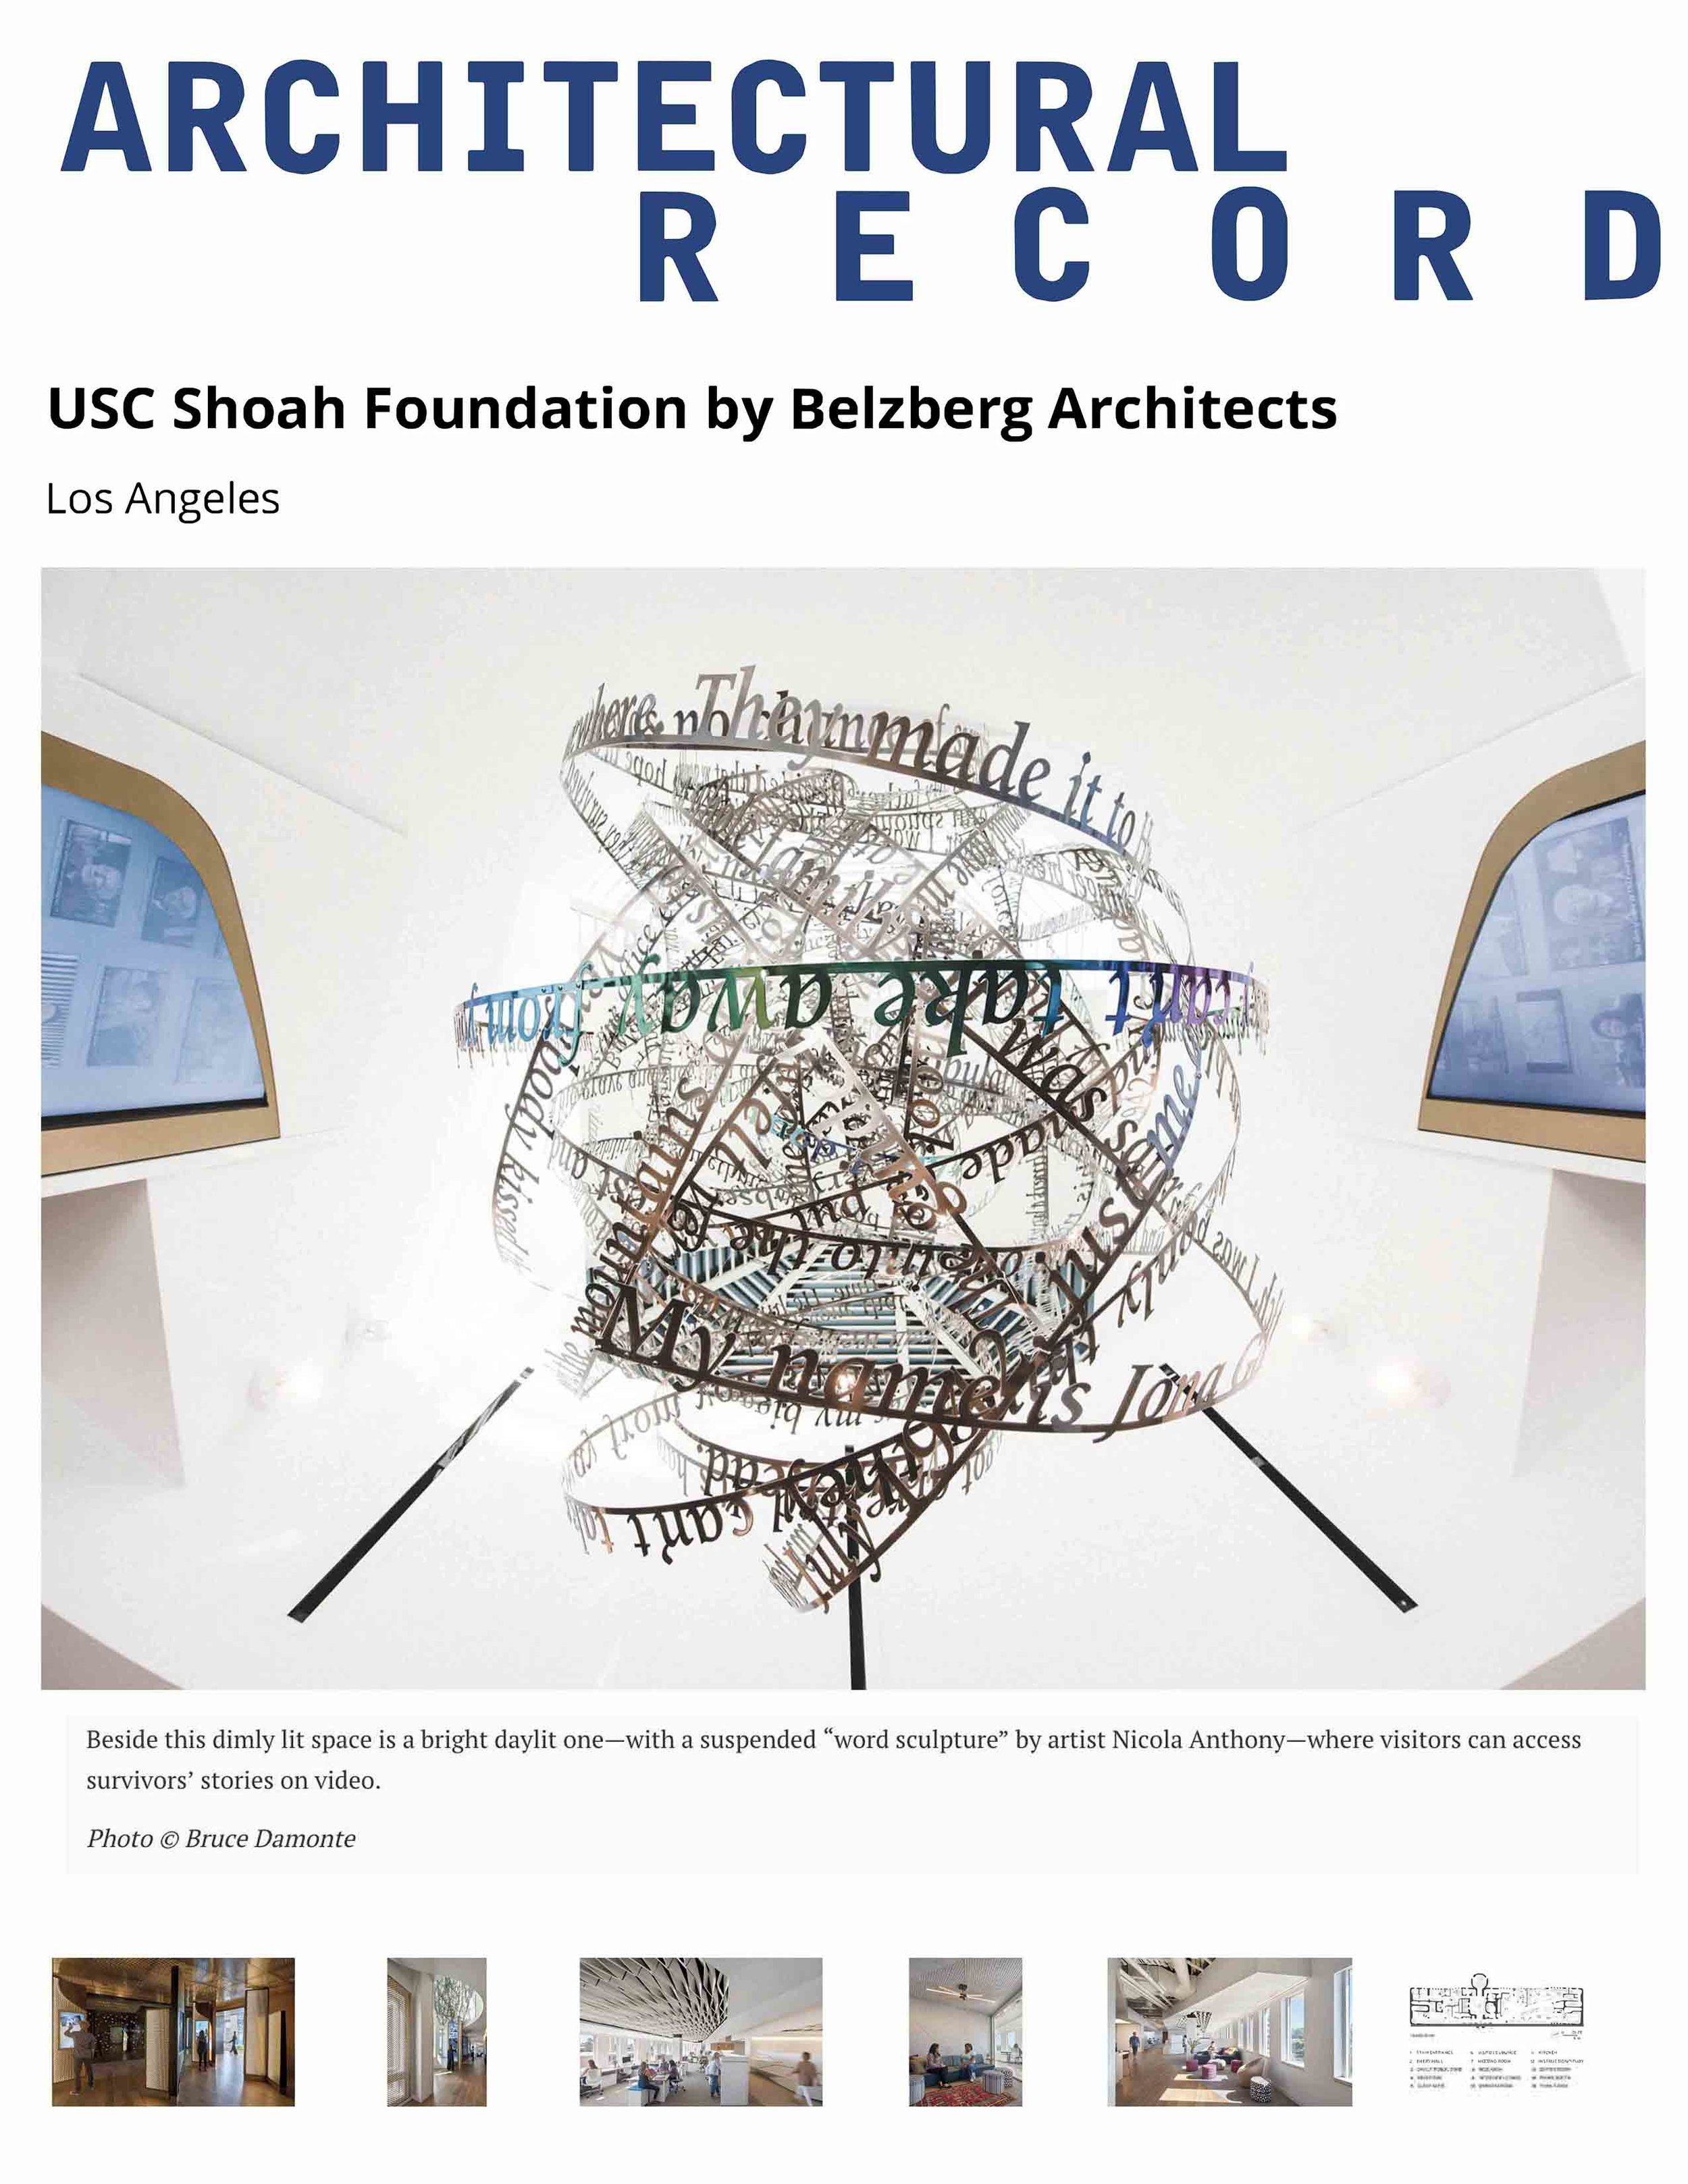 2019.03.07 Architectural Record_Nicola Anthony_USC Shoah Foundation